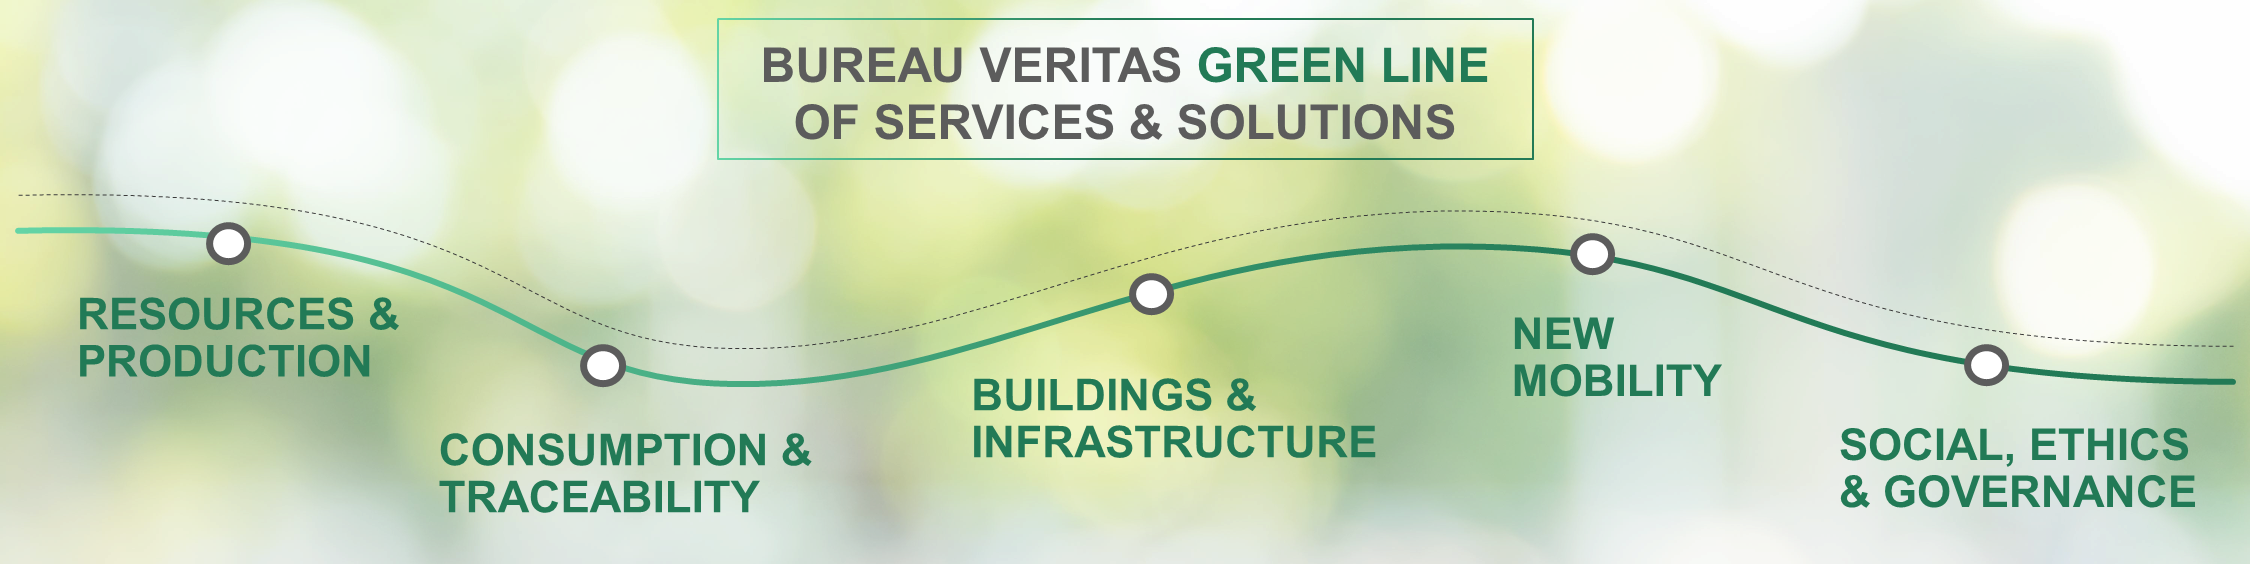 GreenLine Services ans solutions